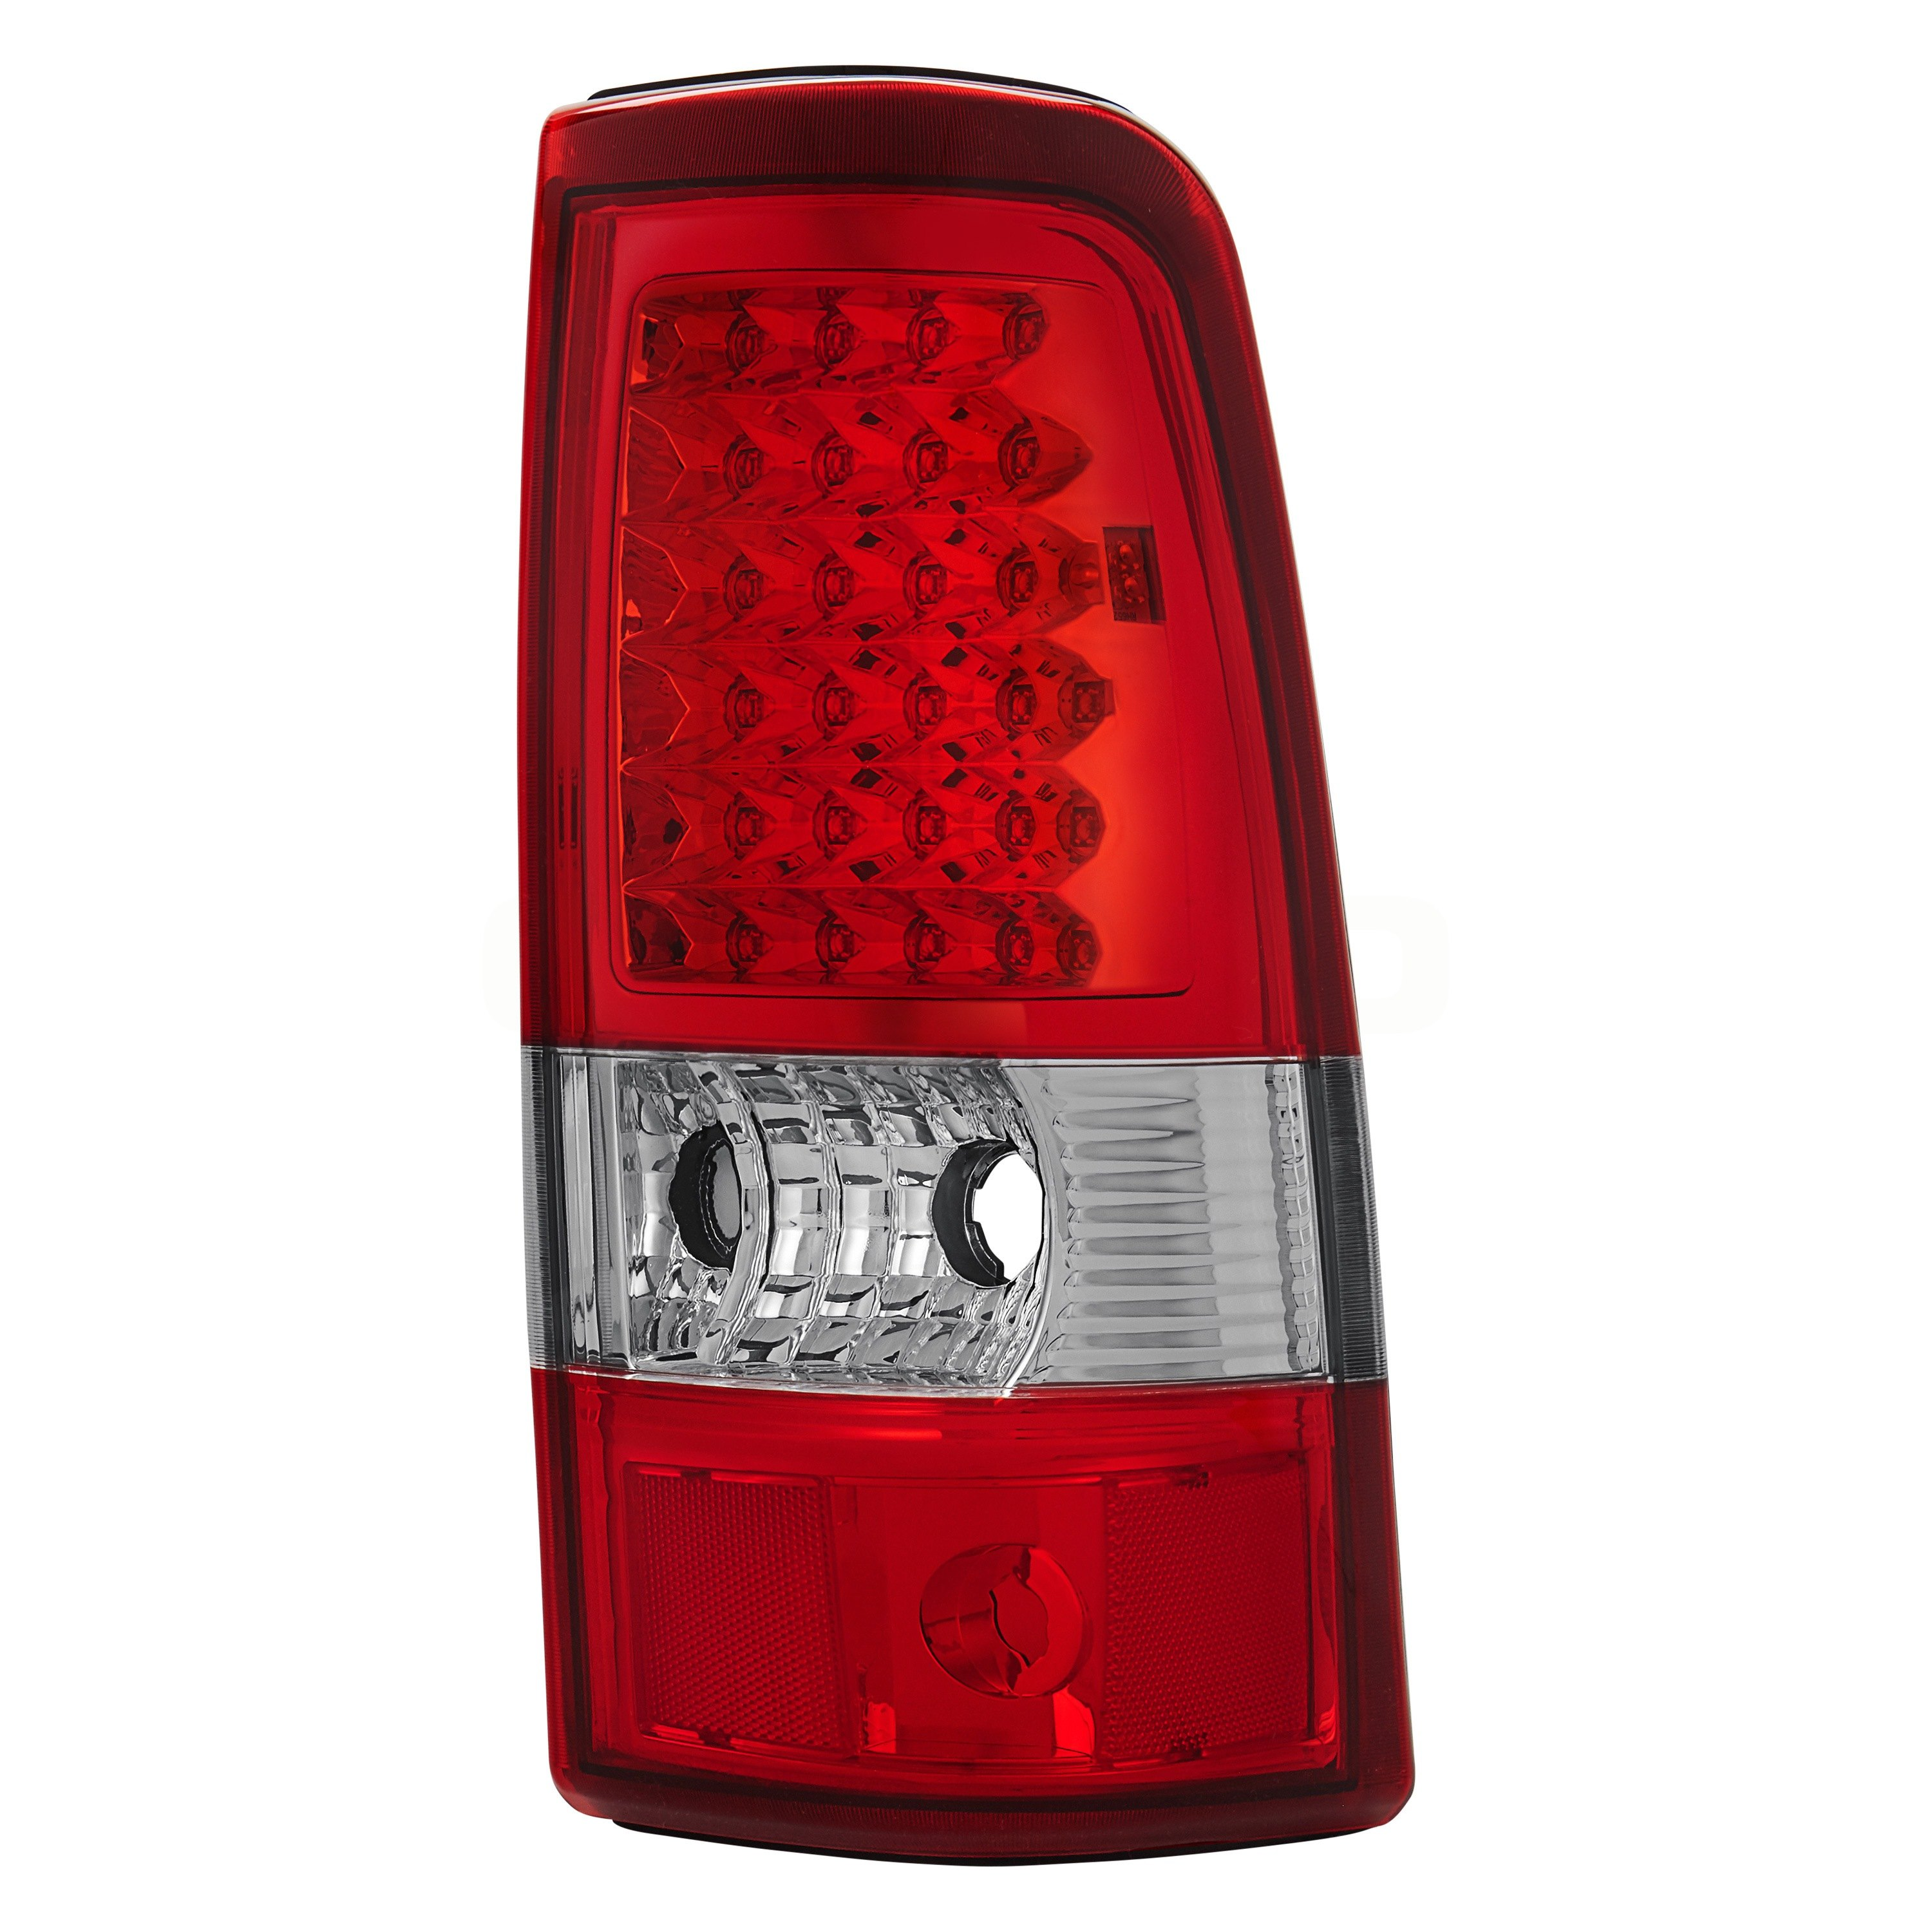 Lumen Chevy Silverado Fleetside 2004 Chrome Red Led Tail Lights